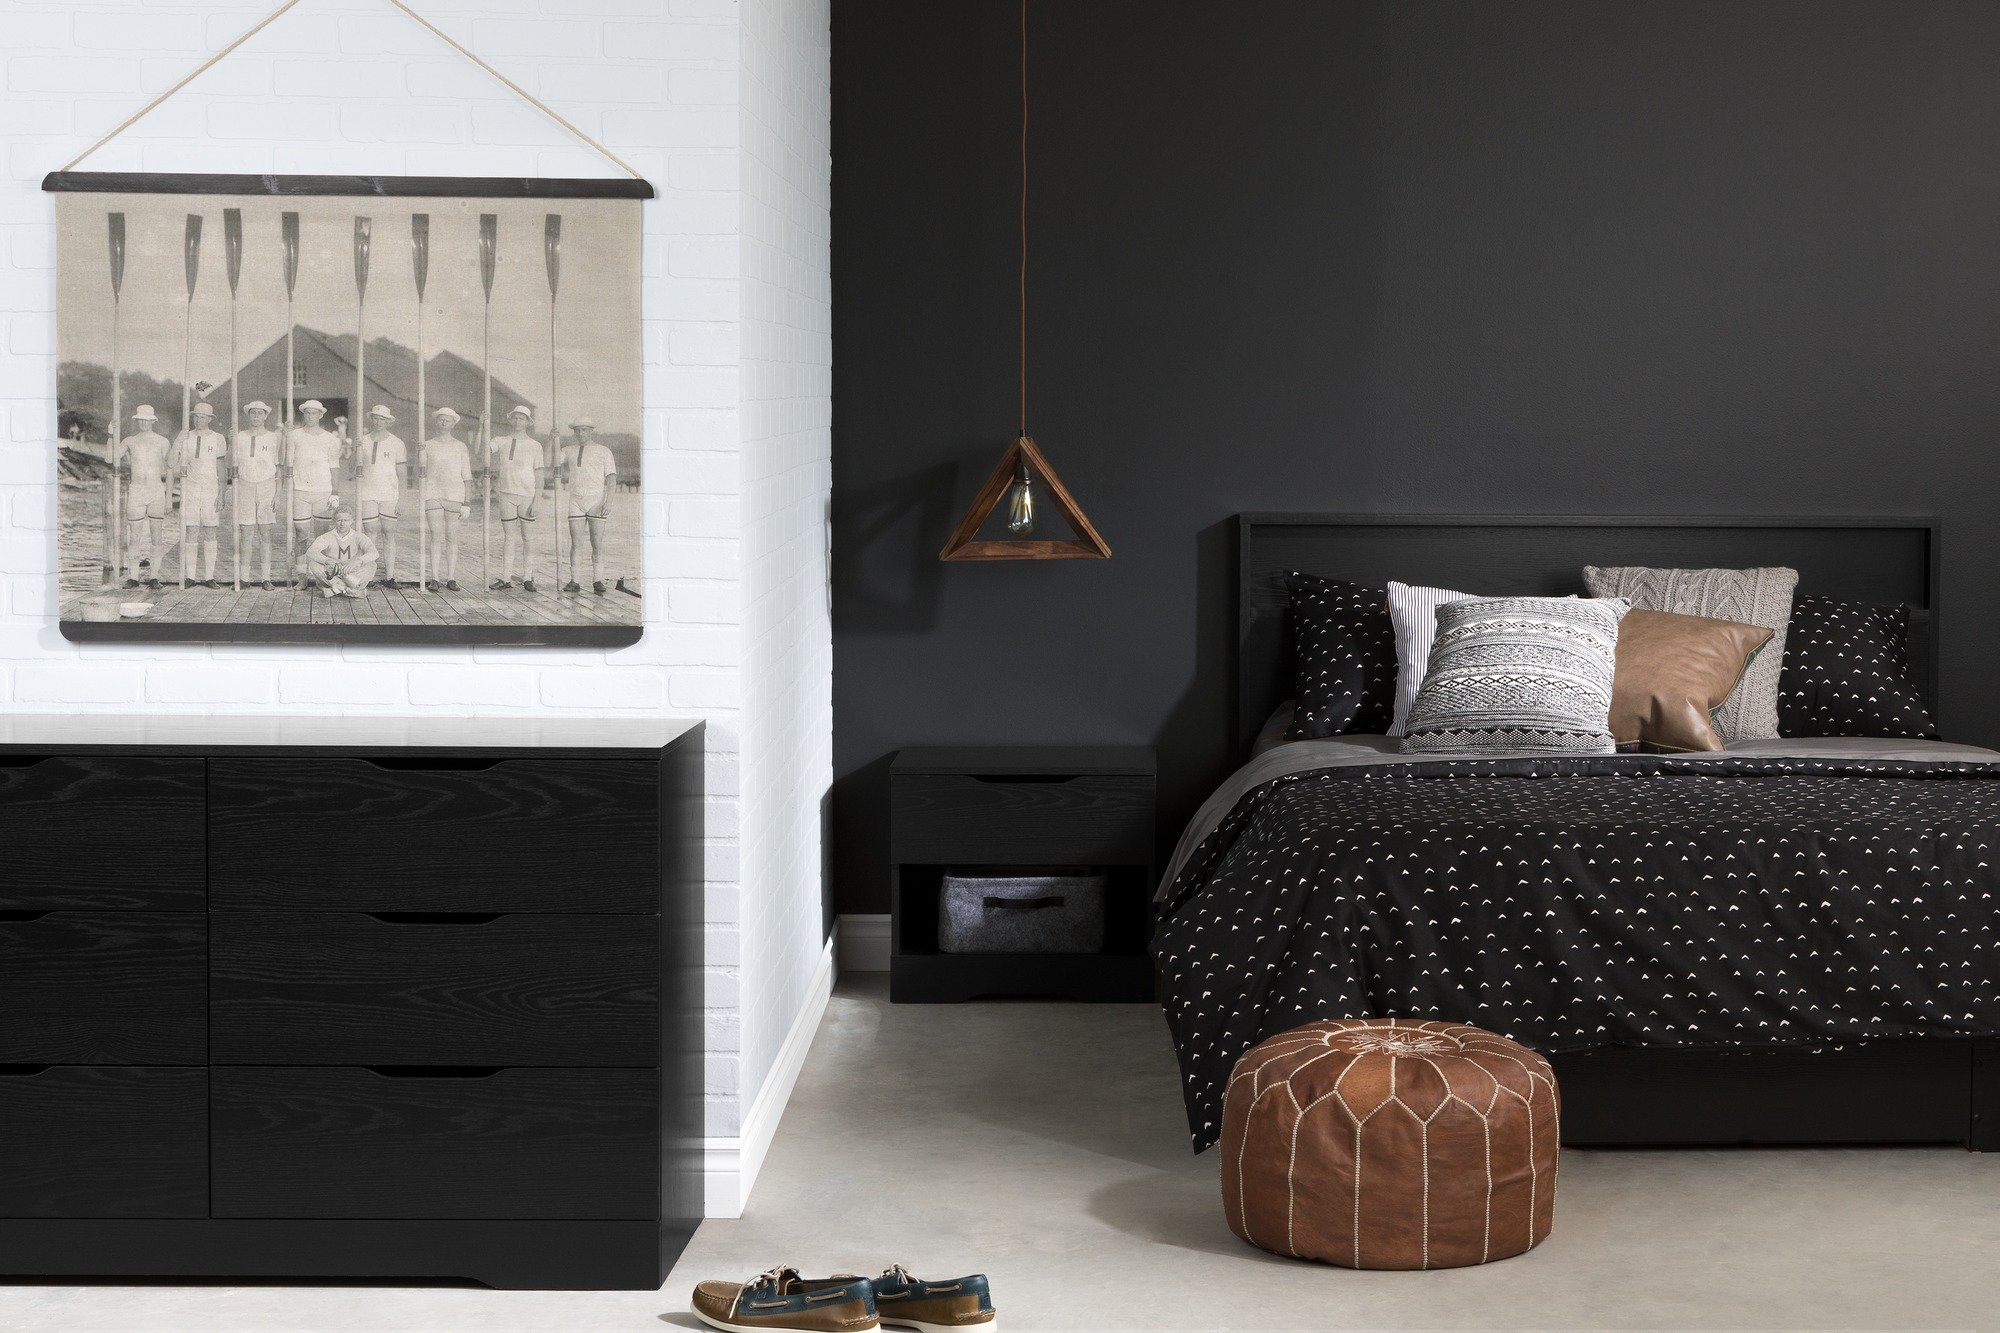 South Shore 11290 Holland Headboard (54/60''), Full/Queen, Black Oak by South Shore (Image #3)